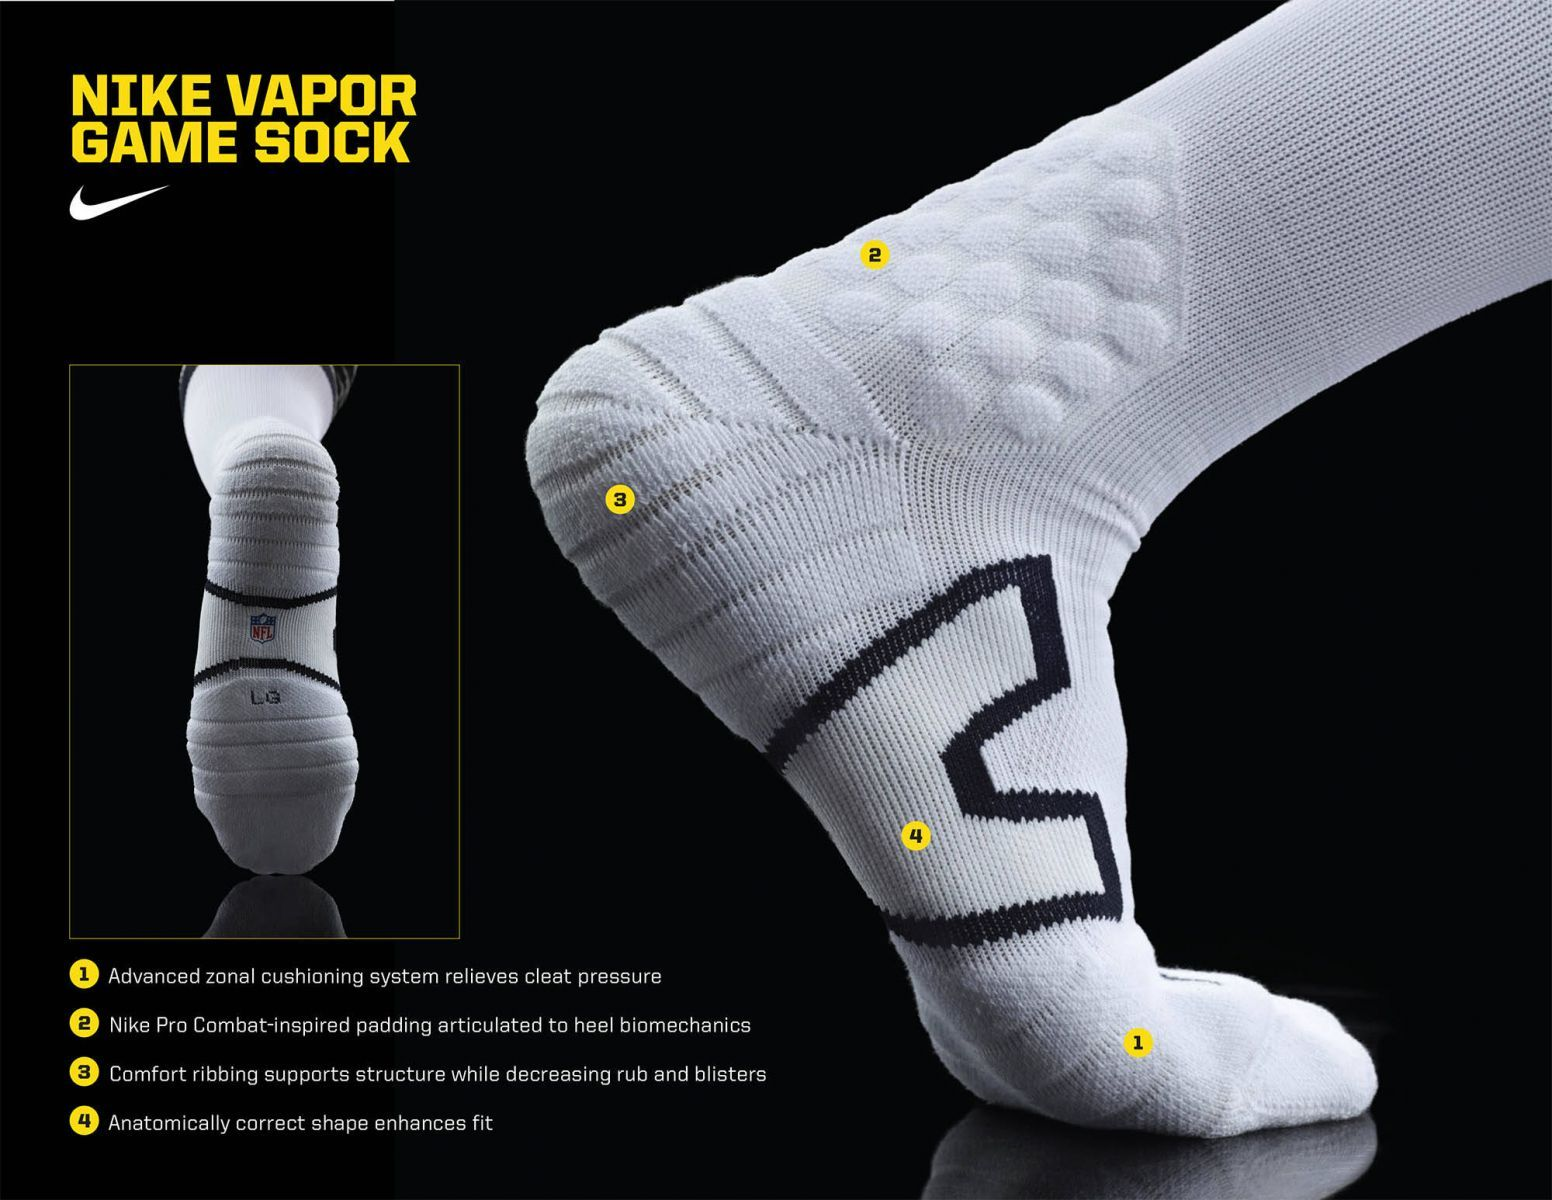 dd4e1d5a Nike NFL 2012 Vapor Game Sock Tech | Stuff 4 kid football players ...